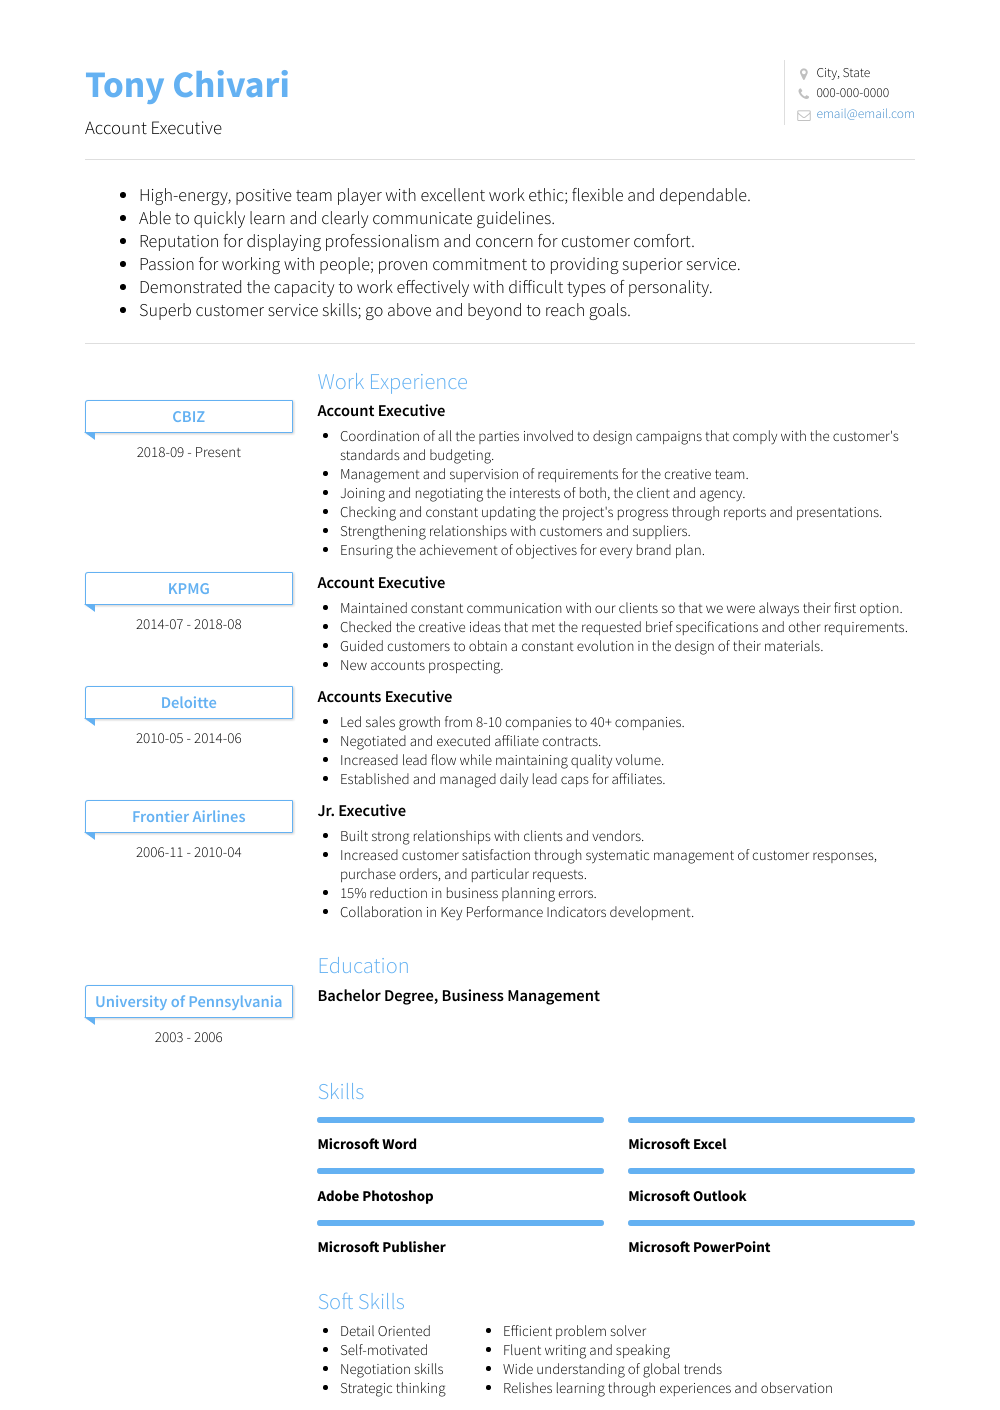 Account Executive Resume Sample and Template